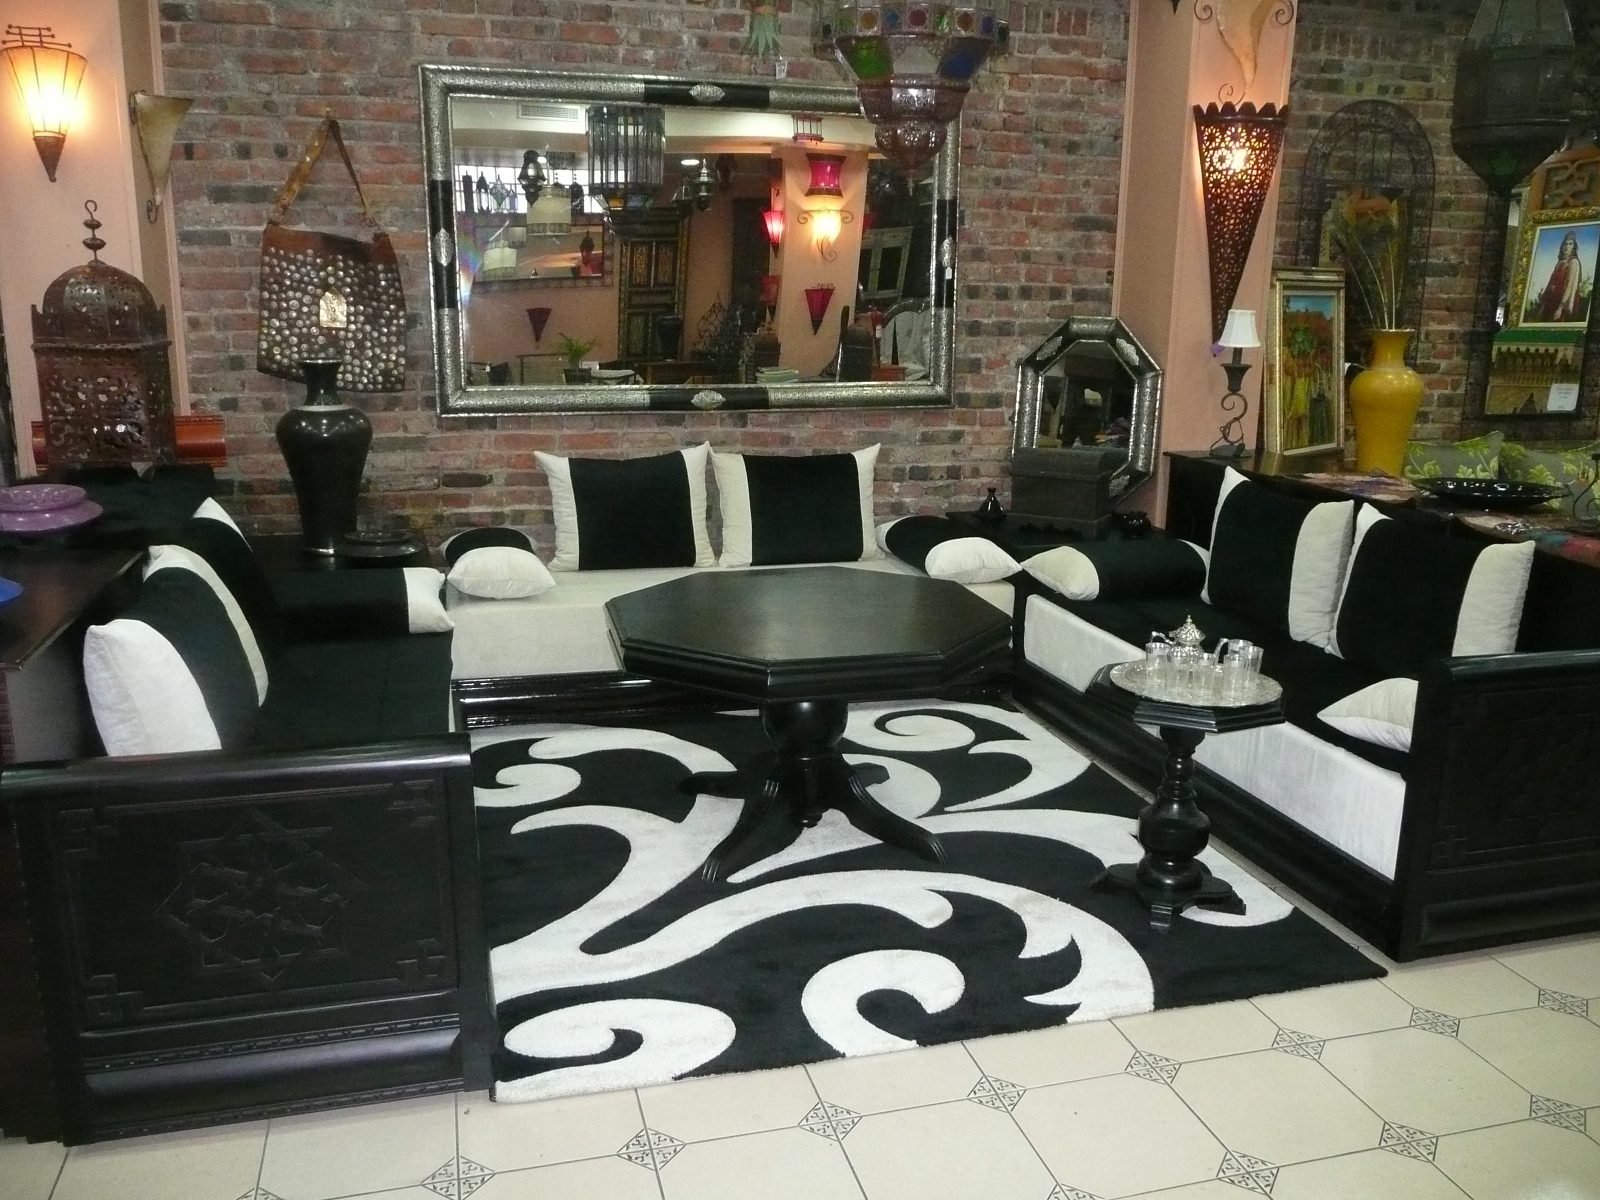 Salon marocain Model dedecoration desalon moderne